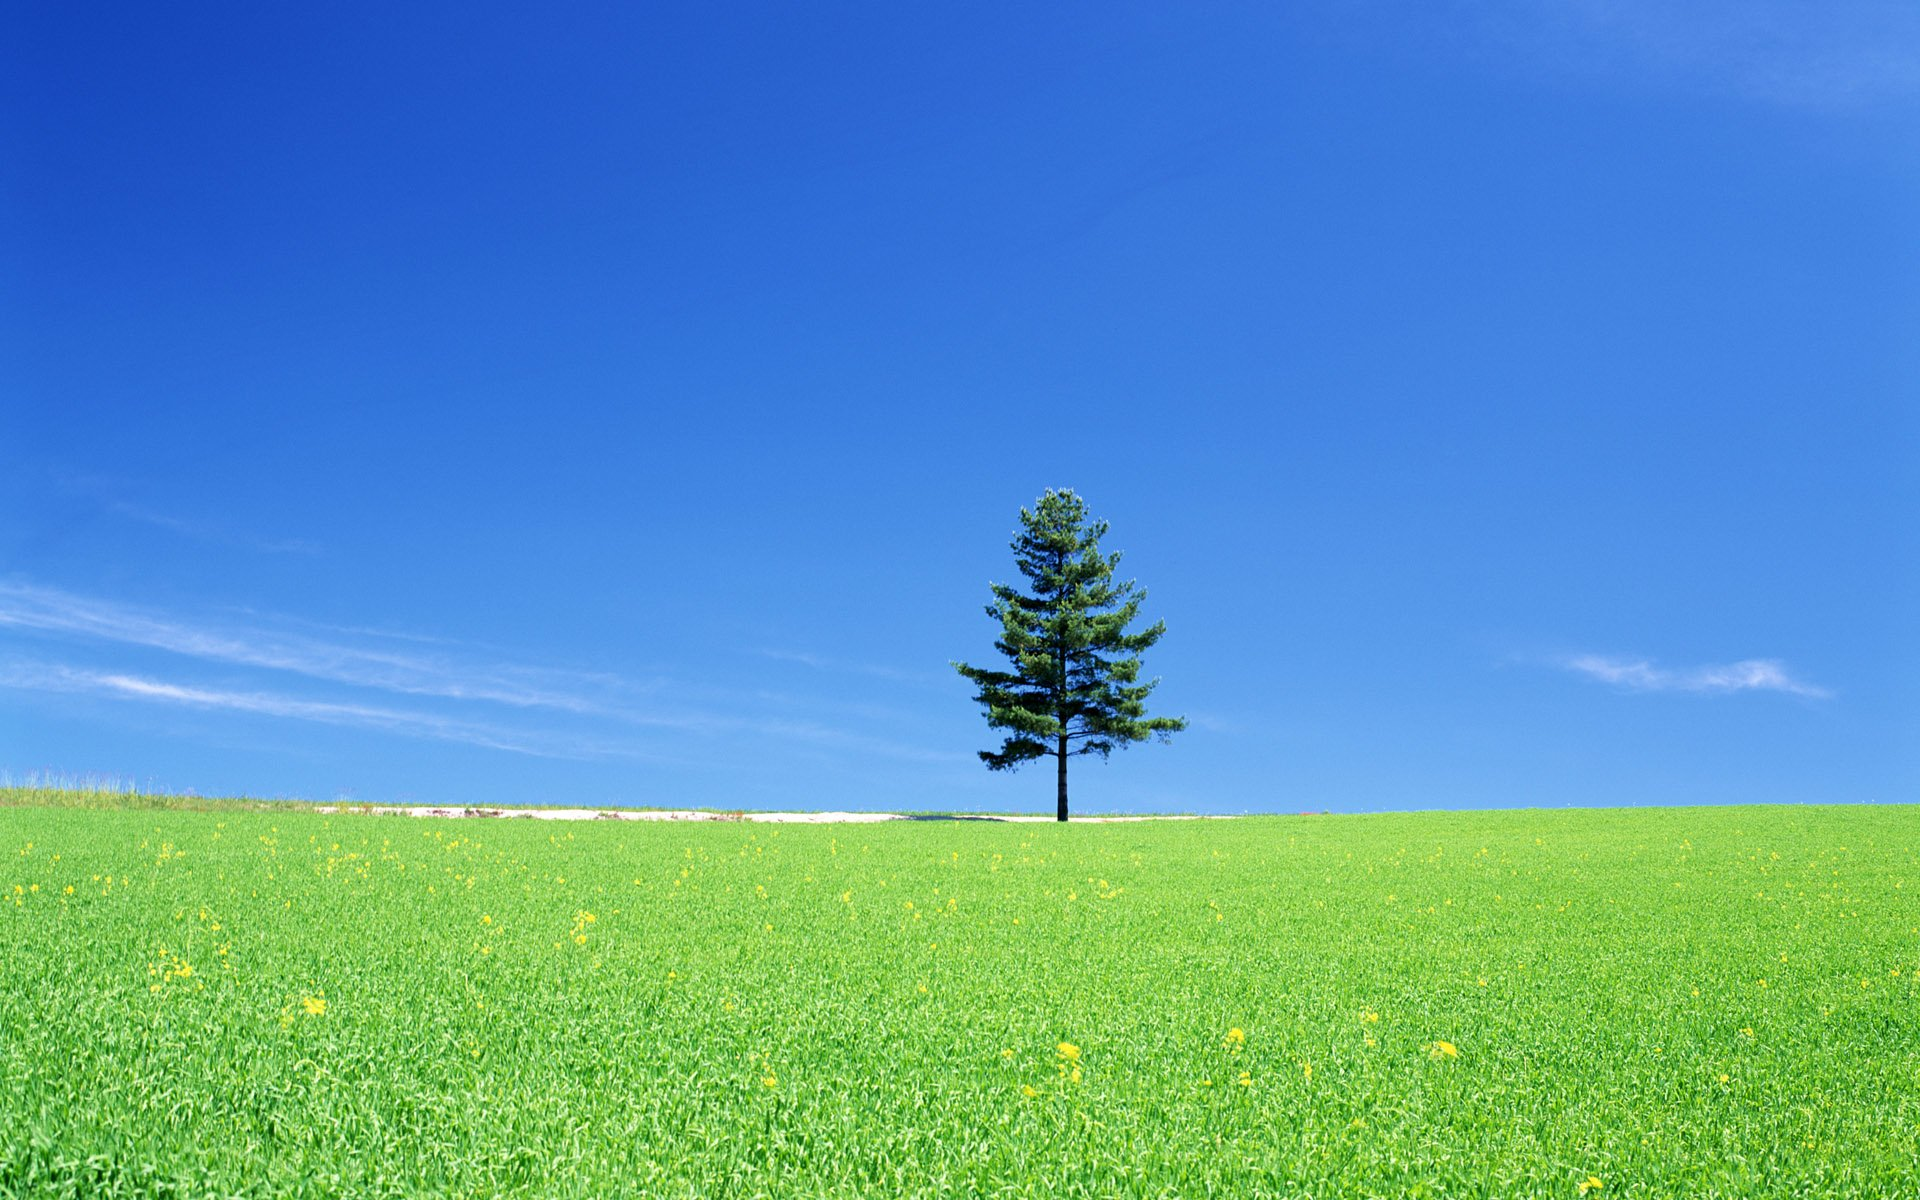 Pine tree full hd wallpaper and background image - Pine tree wallpaper iphone ...